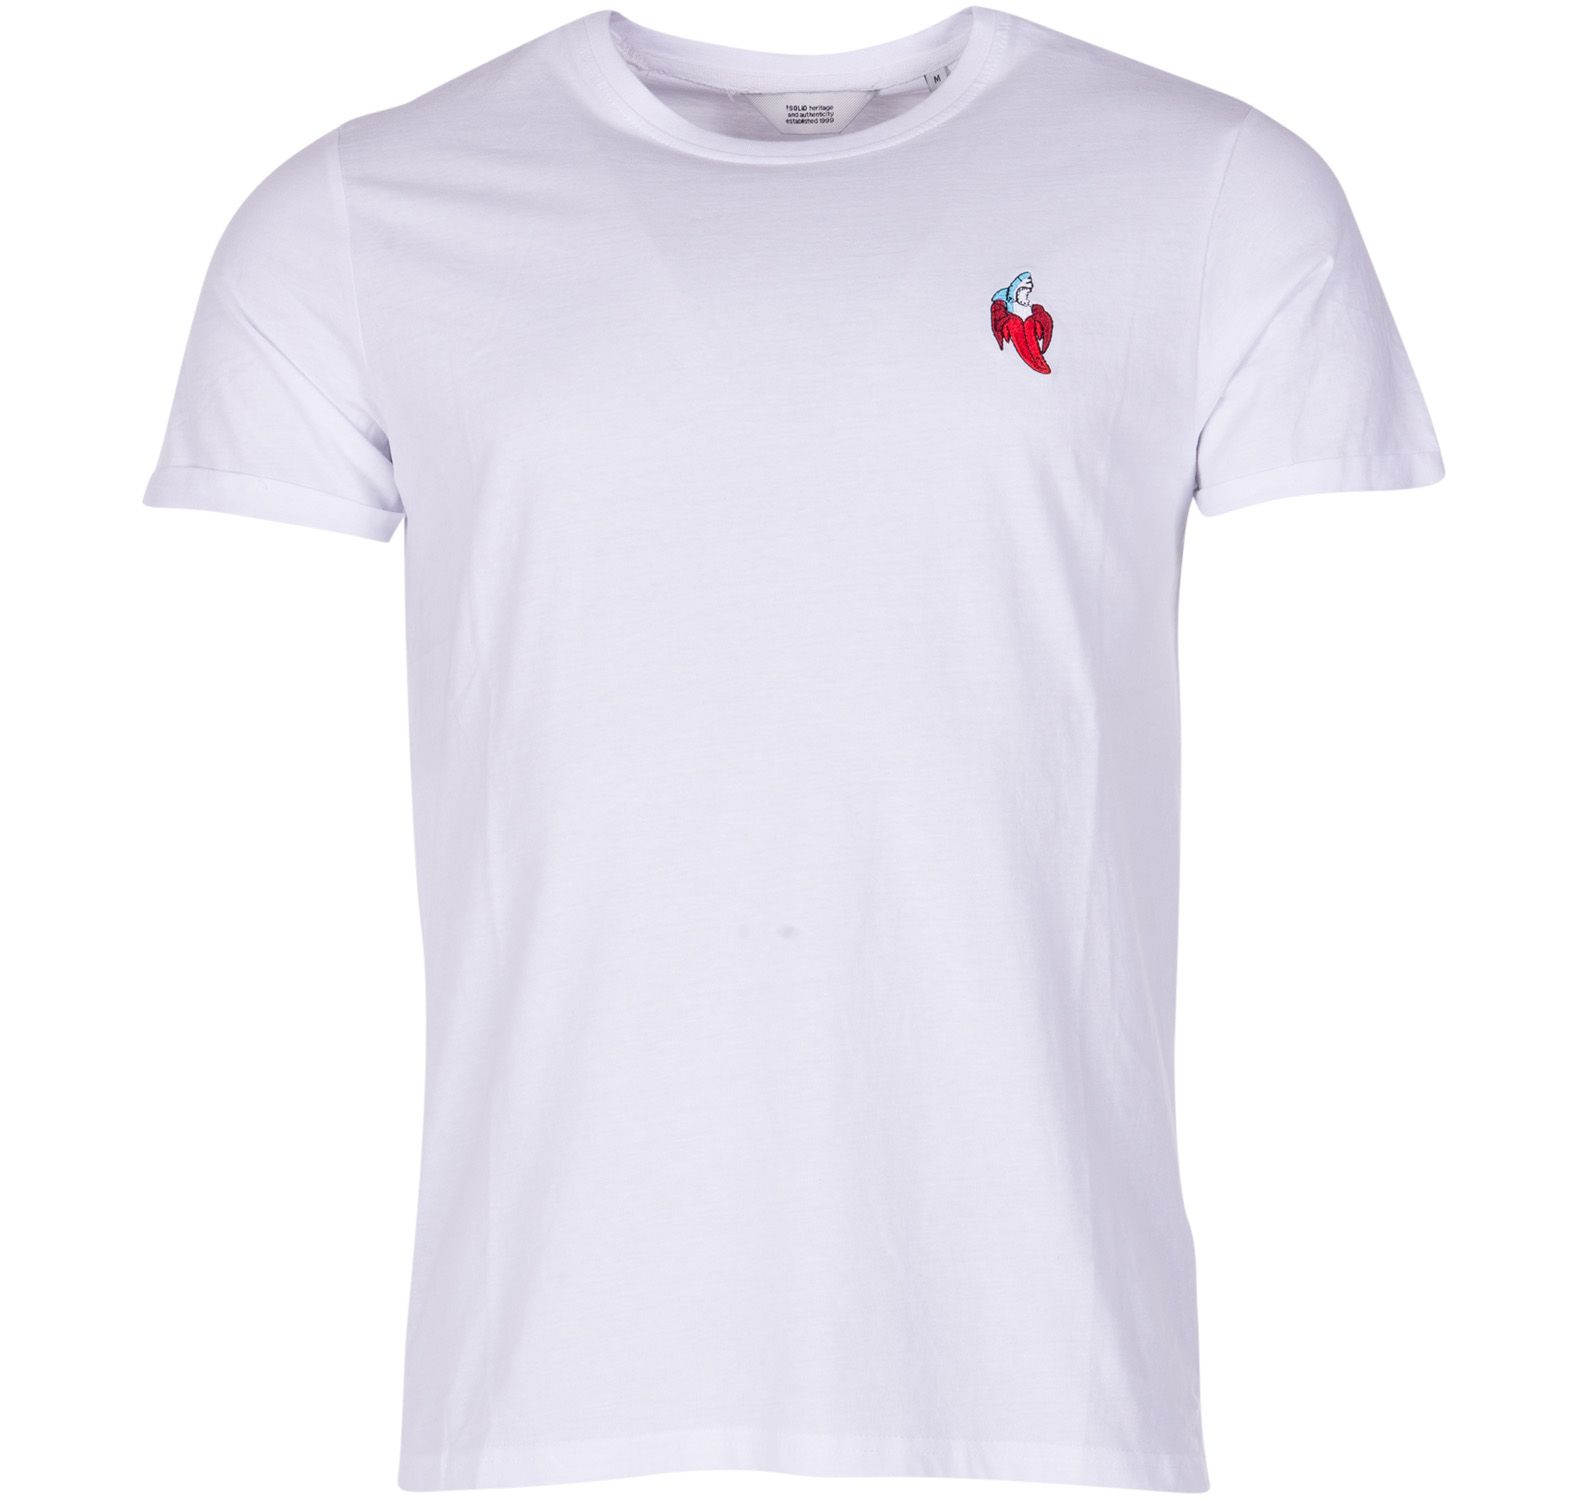 t-shirt - brenden, white, m, solid